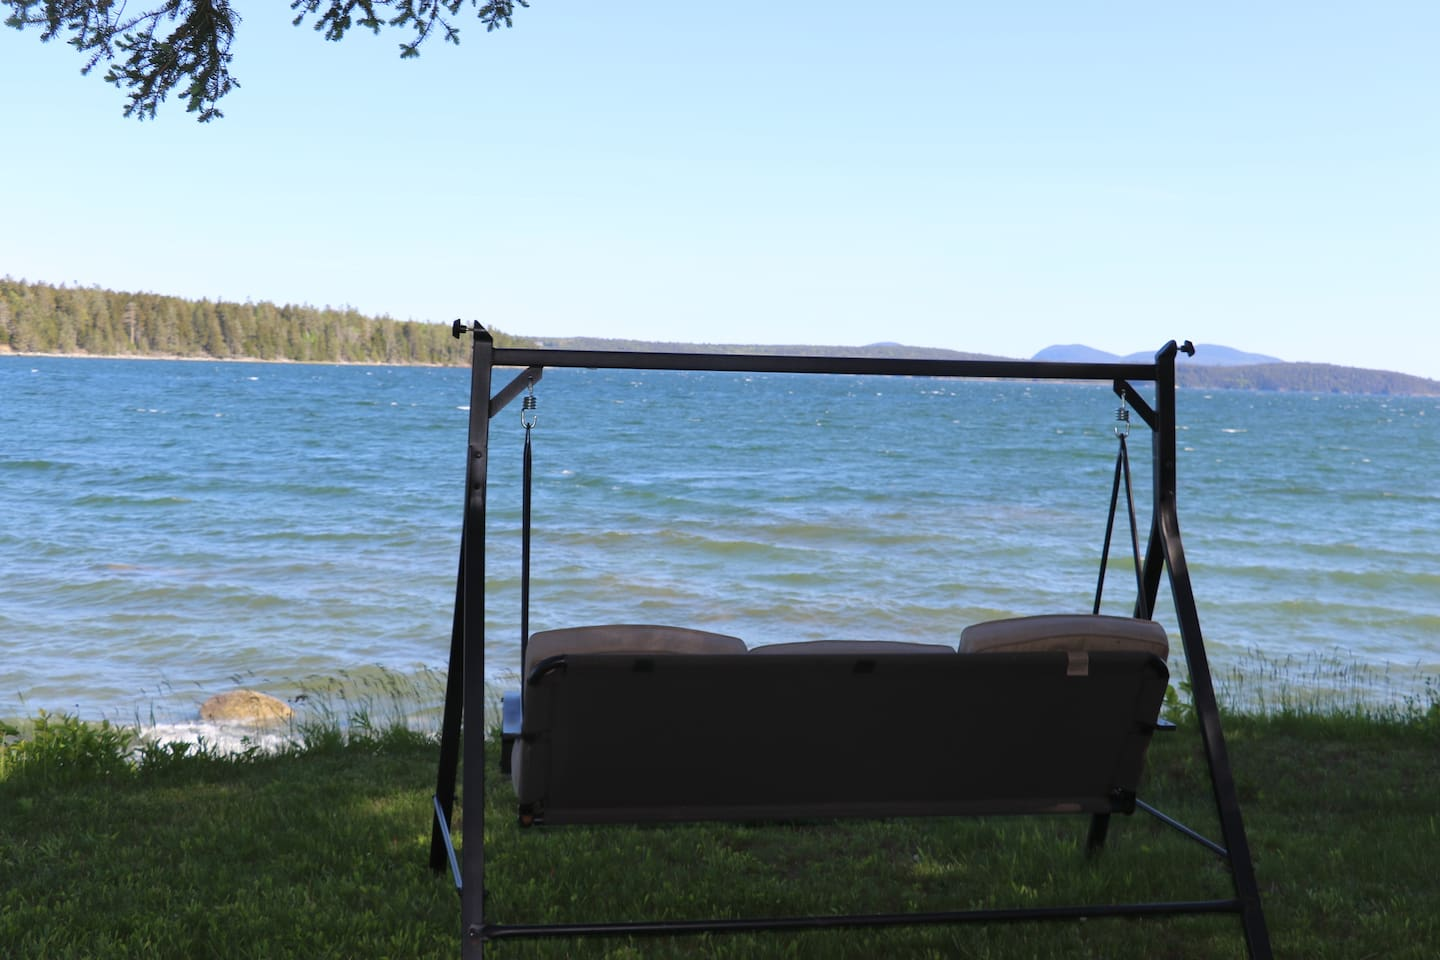 Swing and enjoy the ever changing scenery. Low or high tide it is exceptional down here.